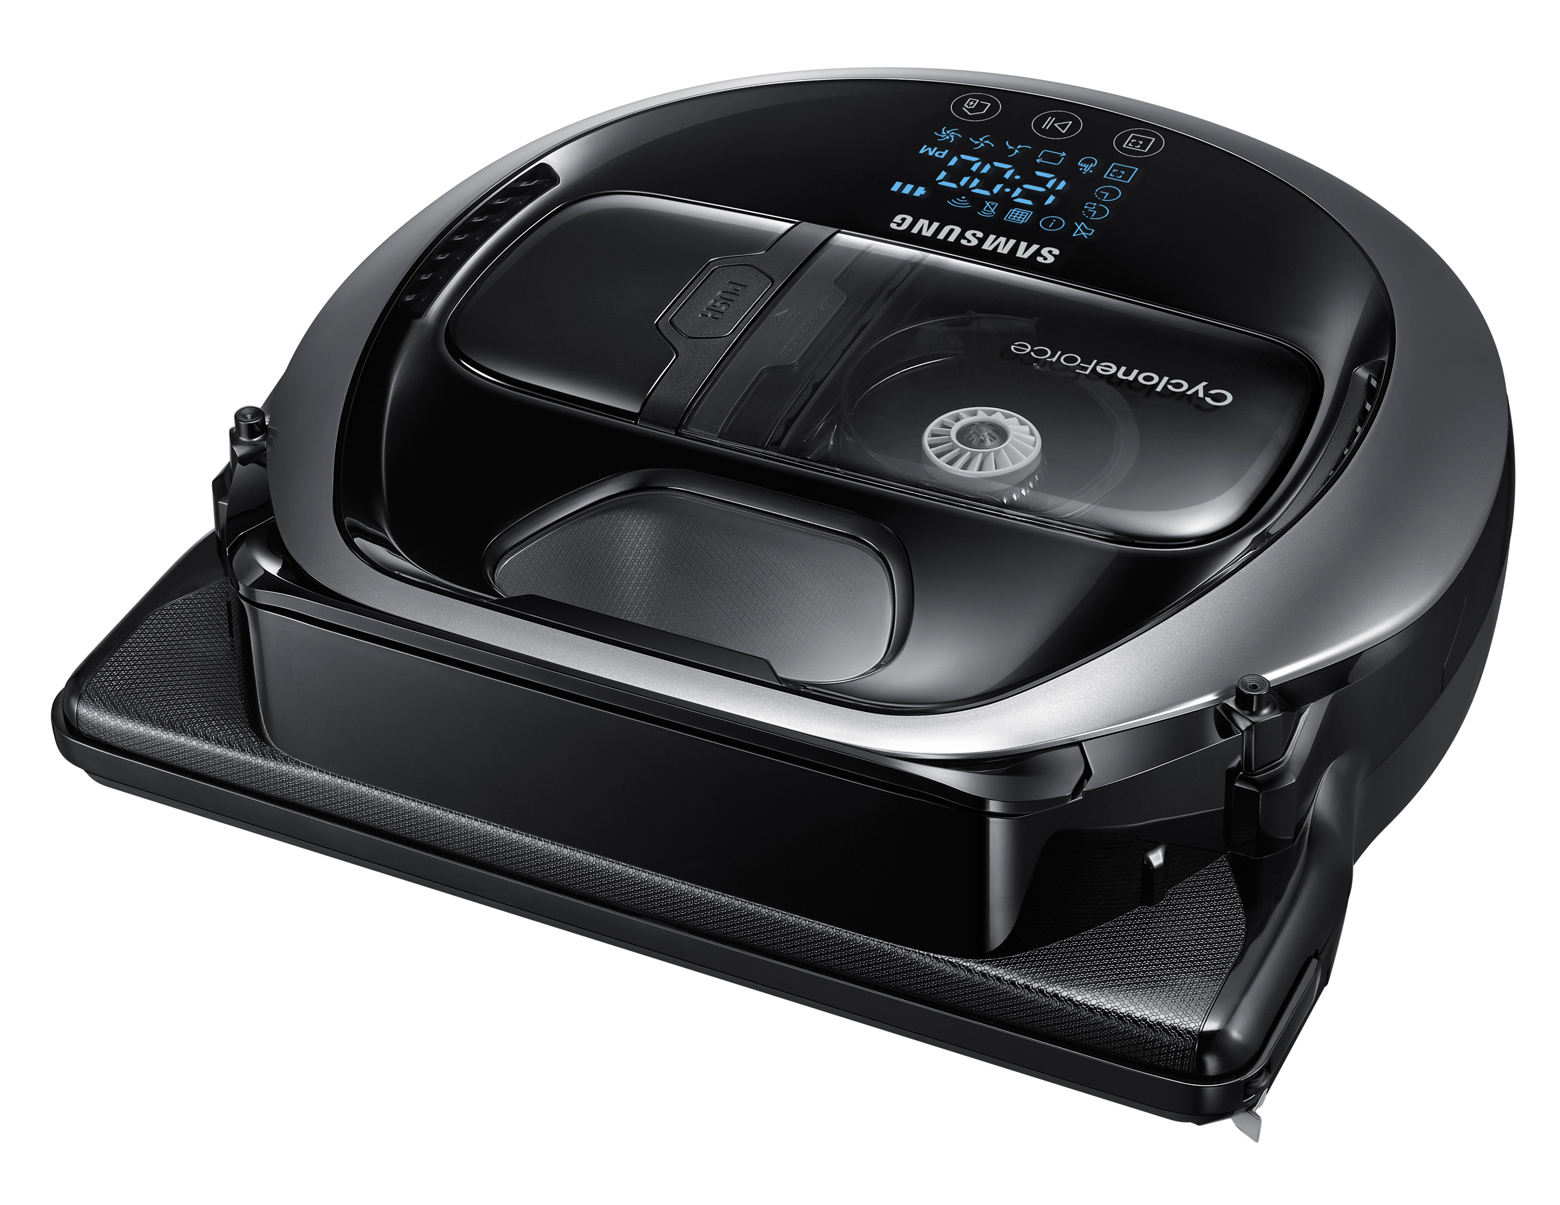 Samsung unveils Amazon Echo-compatible POWERbot VR7000 Robot Vacuum